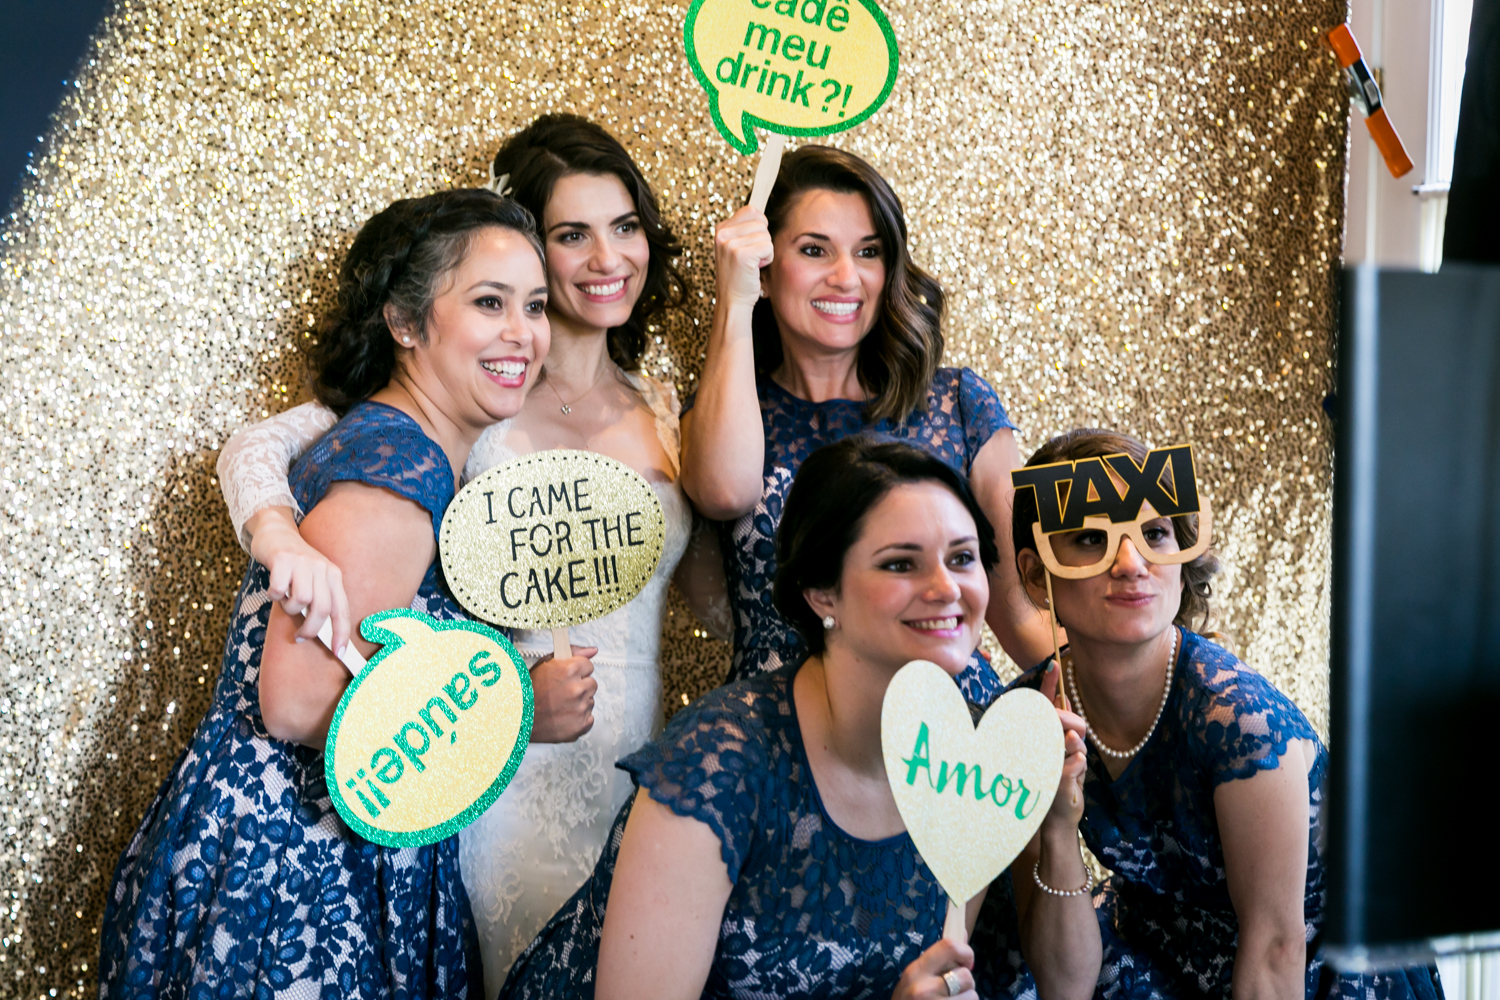 Bride and four female guests in a photobooth